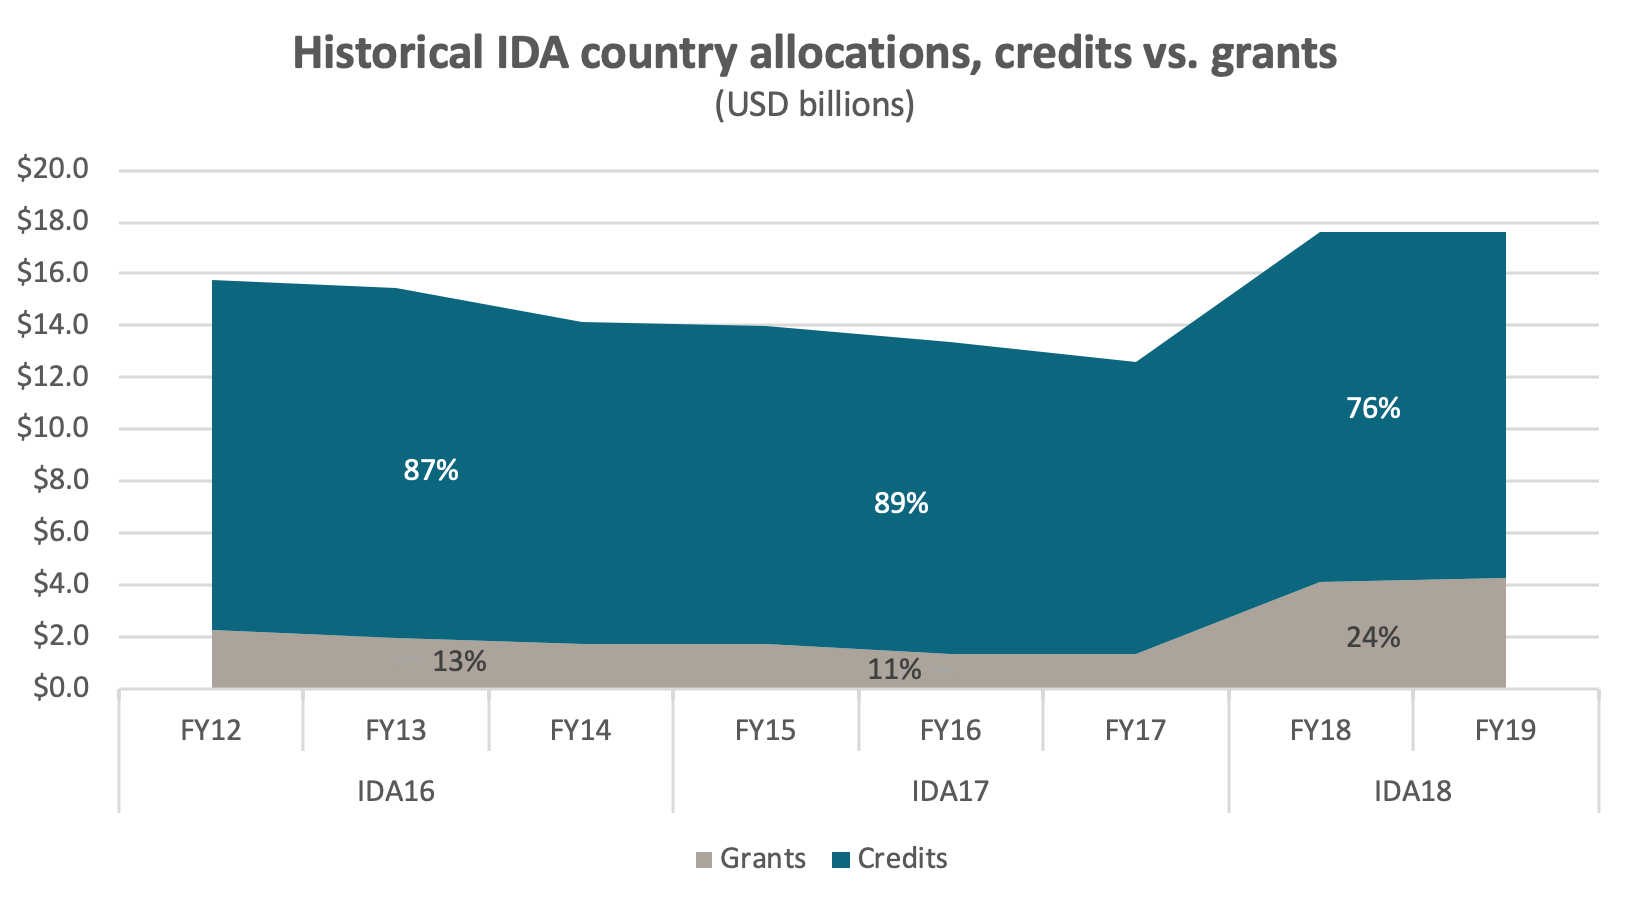 Historical IDA country allocations, credits vs. grants, showing that IDA18 saw a significant increase in the proportion of grants